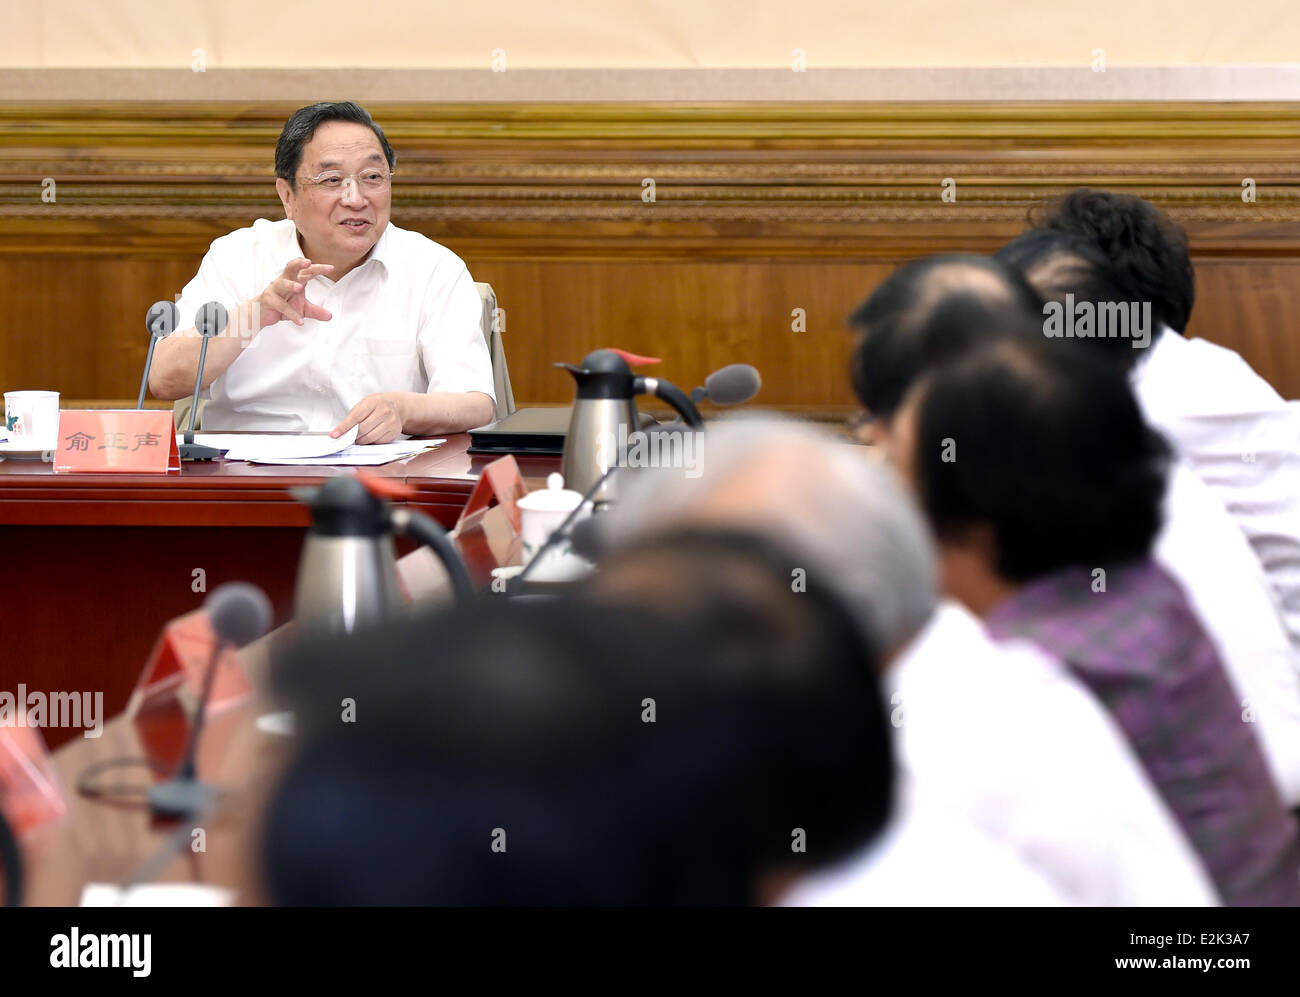 Beijing, China. 20th June, 2014. Yu Zhengsheng (L), a member of the Standing Committee of the Communist Party of - Stock Image